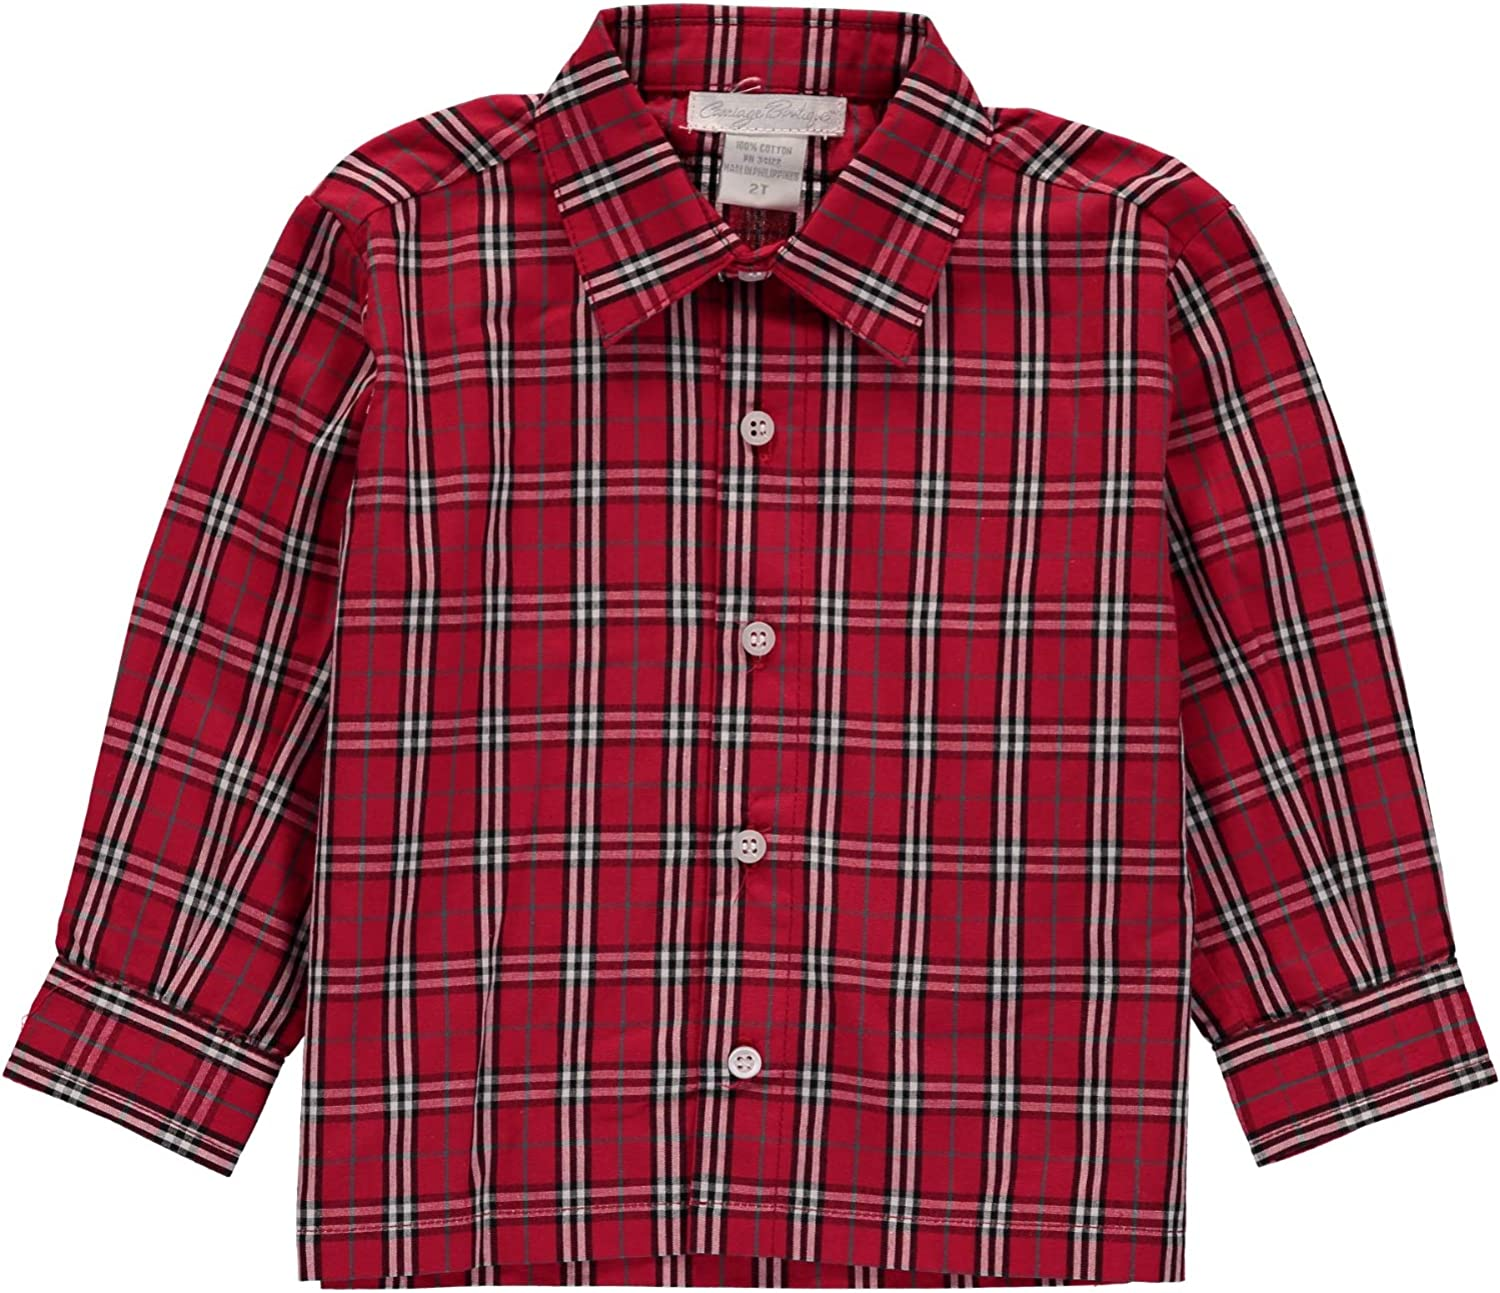 Carriage Boutique Boys Plaid Red Shirt - Button Down and Collar